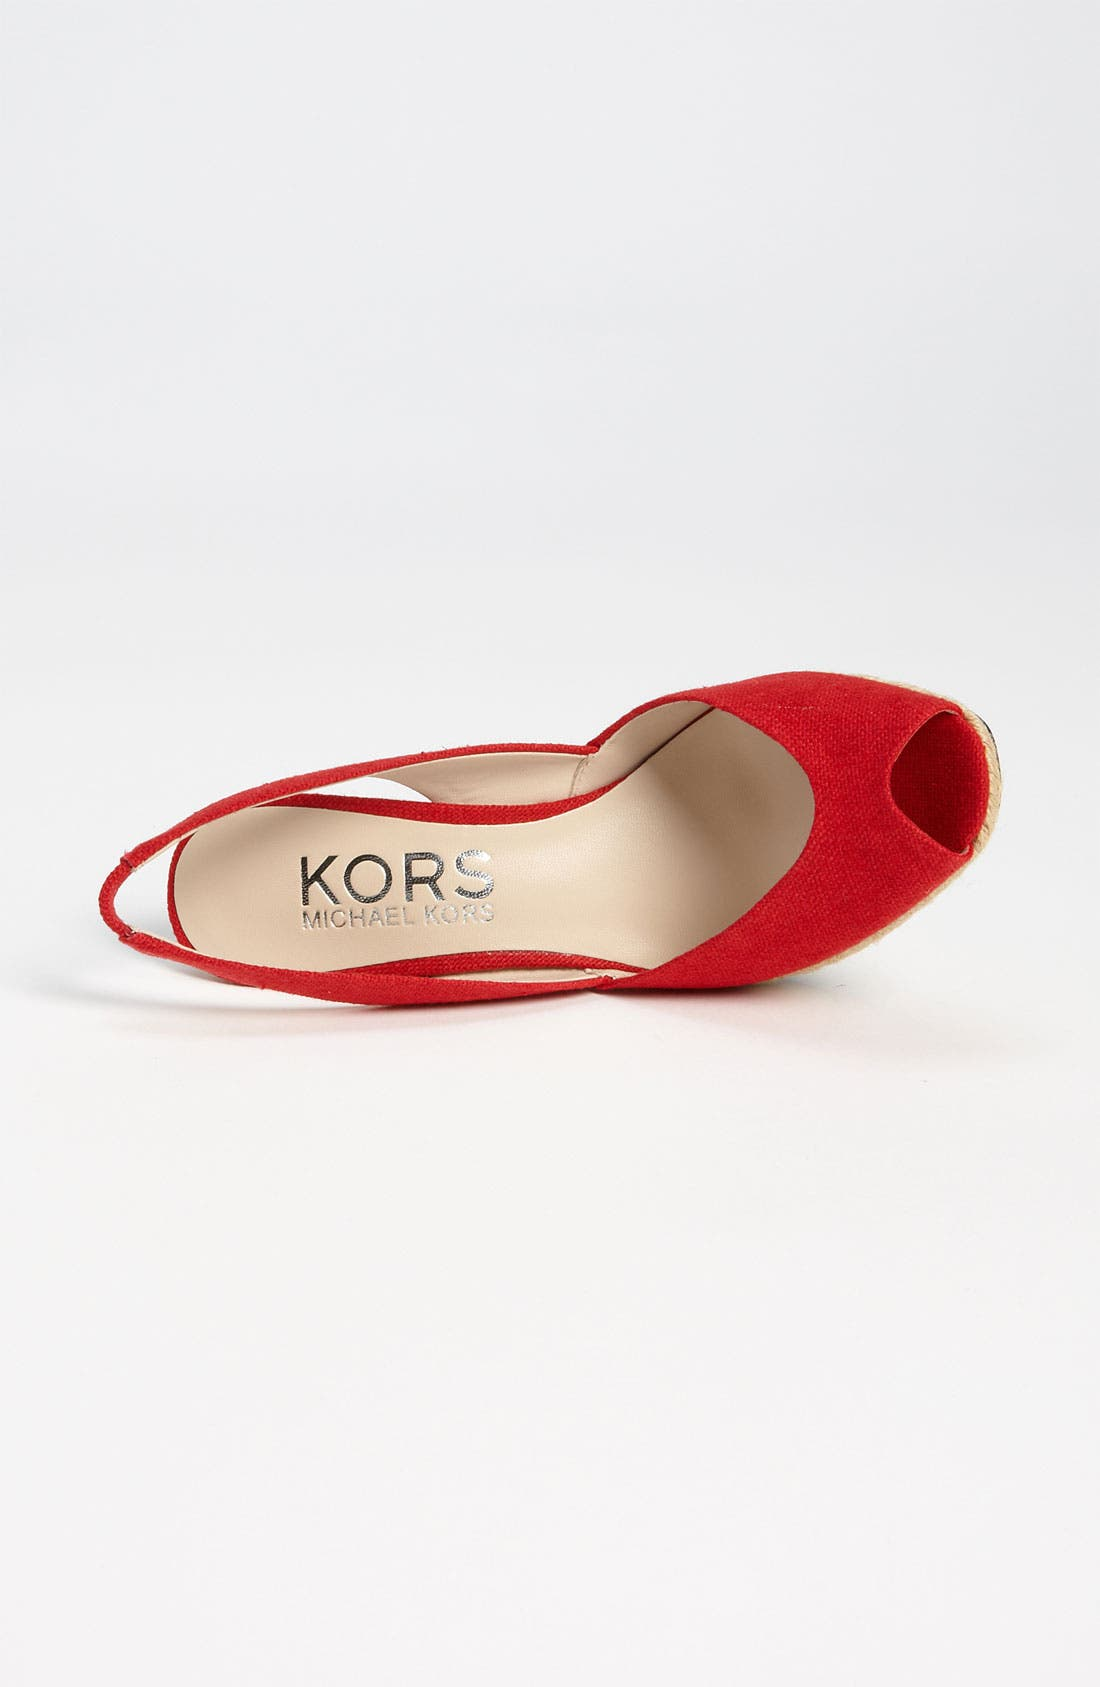 Alternate Image 3  - KORS Michael Kors 'Vivian' Wedge